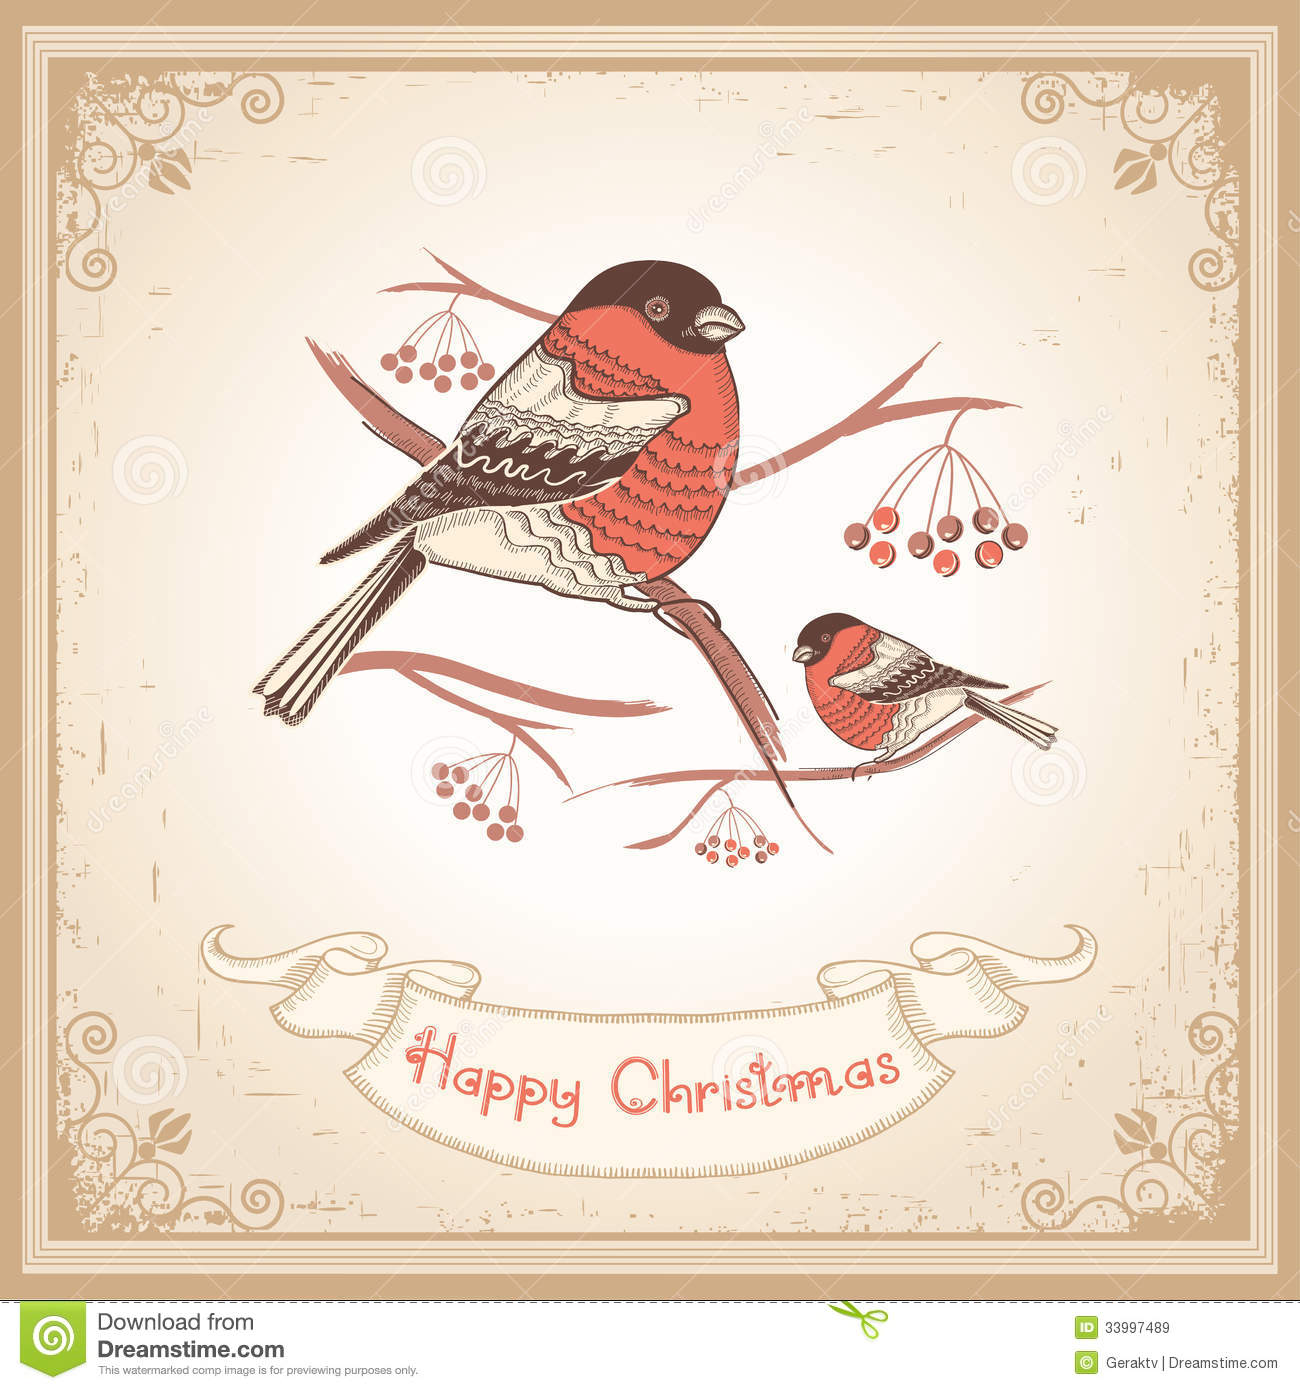 Merry christmas vintage text pictures